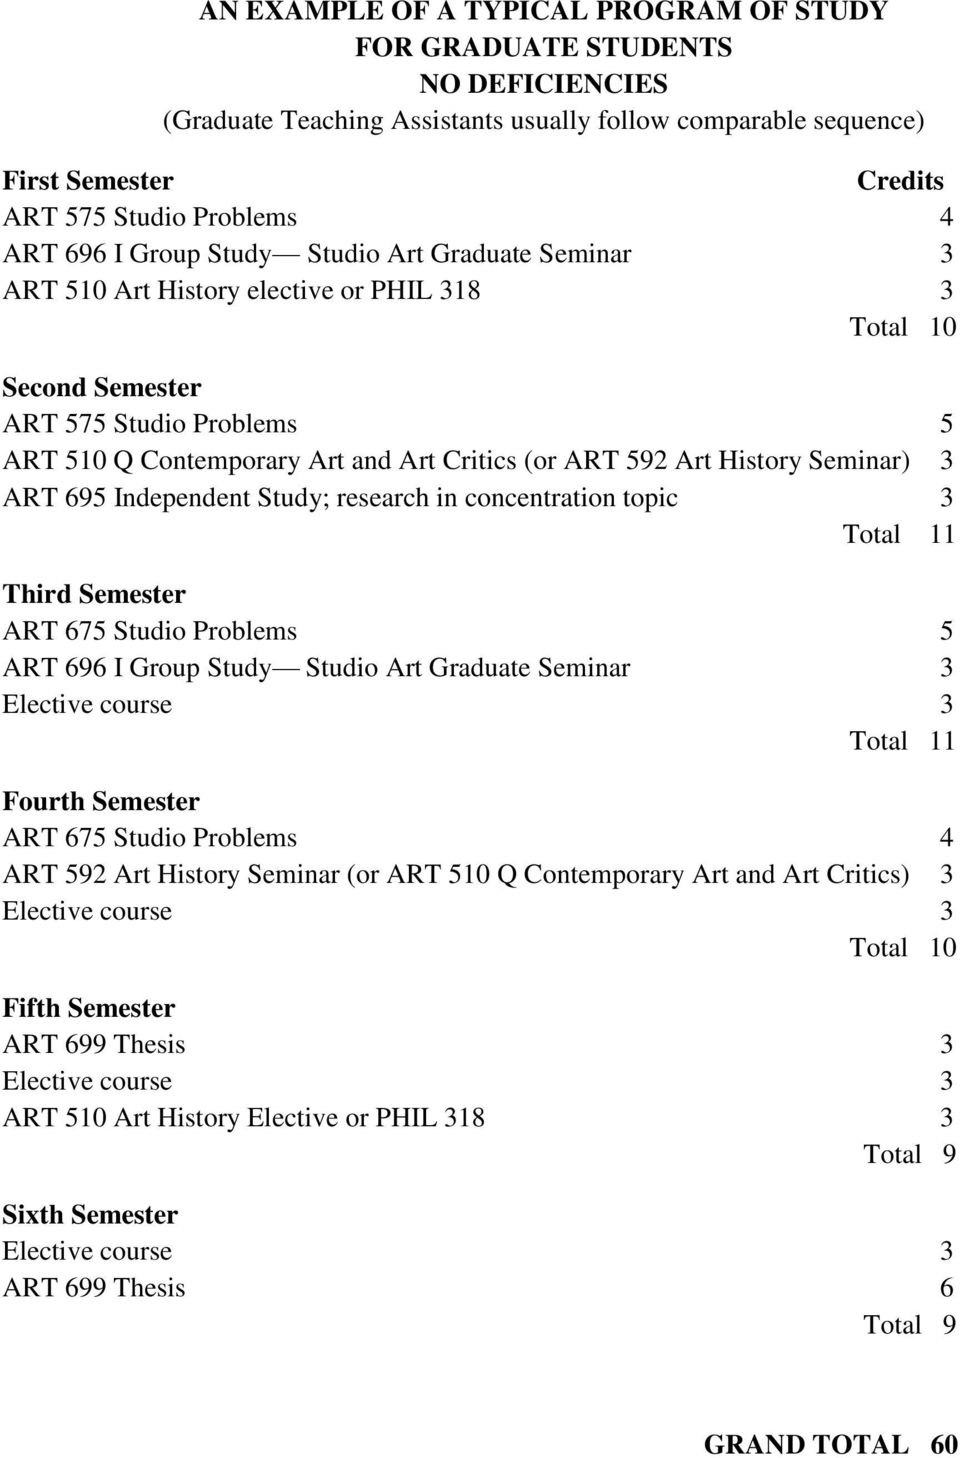 Art History Seminar) 3 ART 695 Independent Study; research in concentration topic 3 Total 11 Third Semester ART 675 Studio Problems 5 ART 696 I Group Study Studio Art Graduate Seminar 3 Total 11